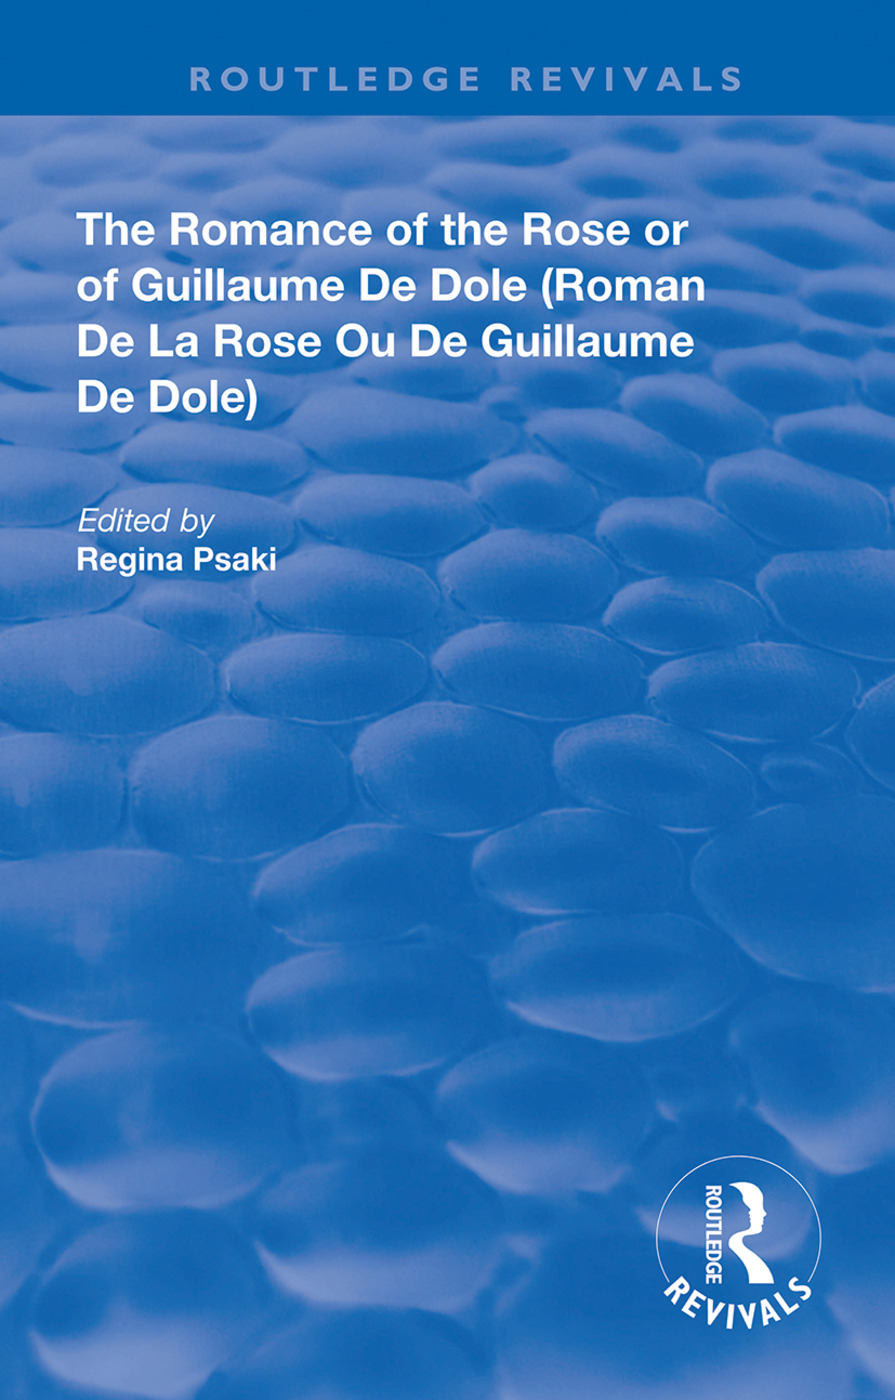 The Romance of the Rose or of Guillaume de Dole book cover